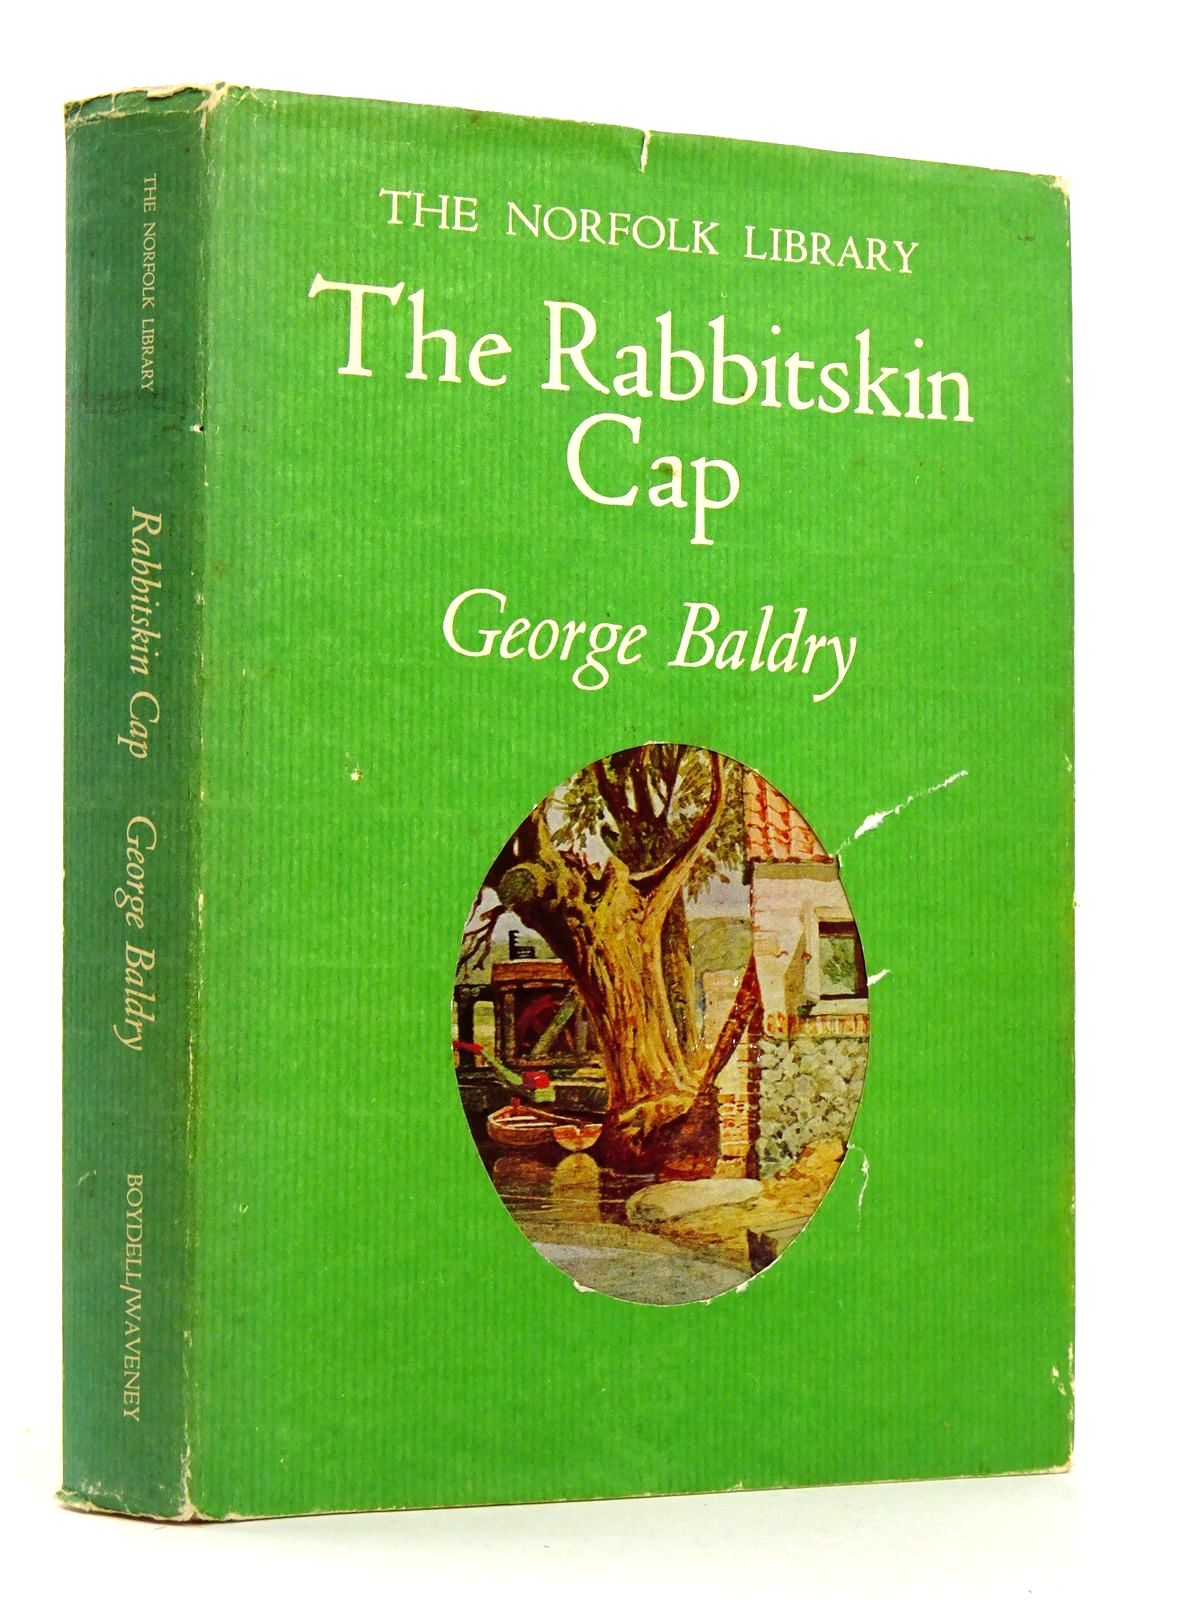 Photo of THE RABBIT SKIN CAP written by Baldry, George<br />Haggard, Lilias Rider illustrated by Seago, Edward published by The Boydell Press (STOCK CODE: 1818313)  for sale by Stella & Rose's Books